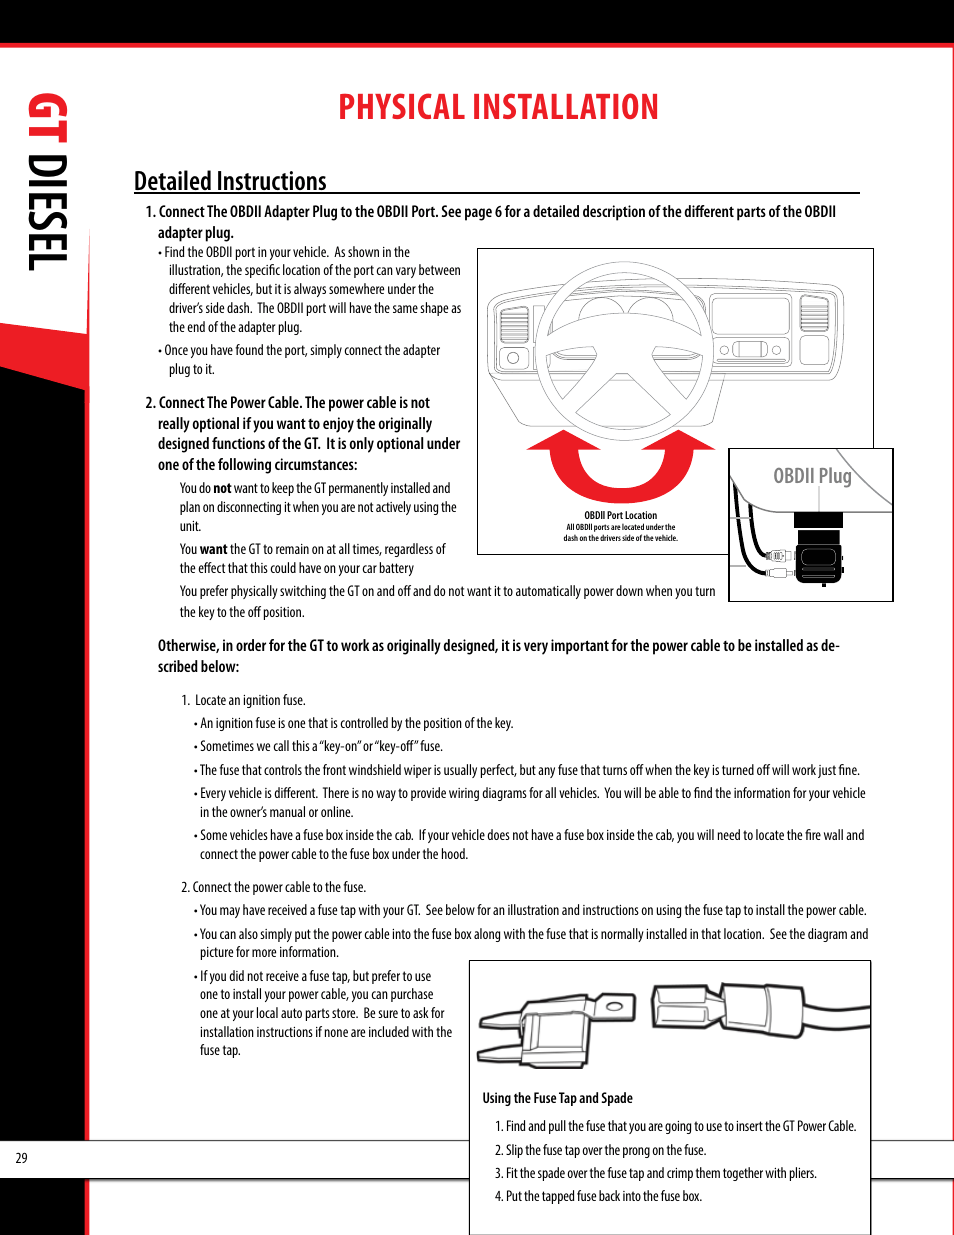 hight resolution of gt diesel physical installation obdii adapter plug installation diagram bully dog 40420 gauge